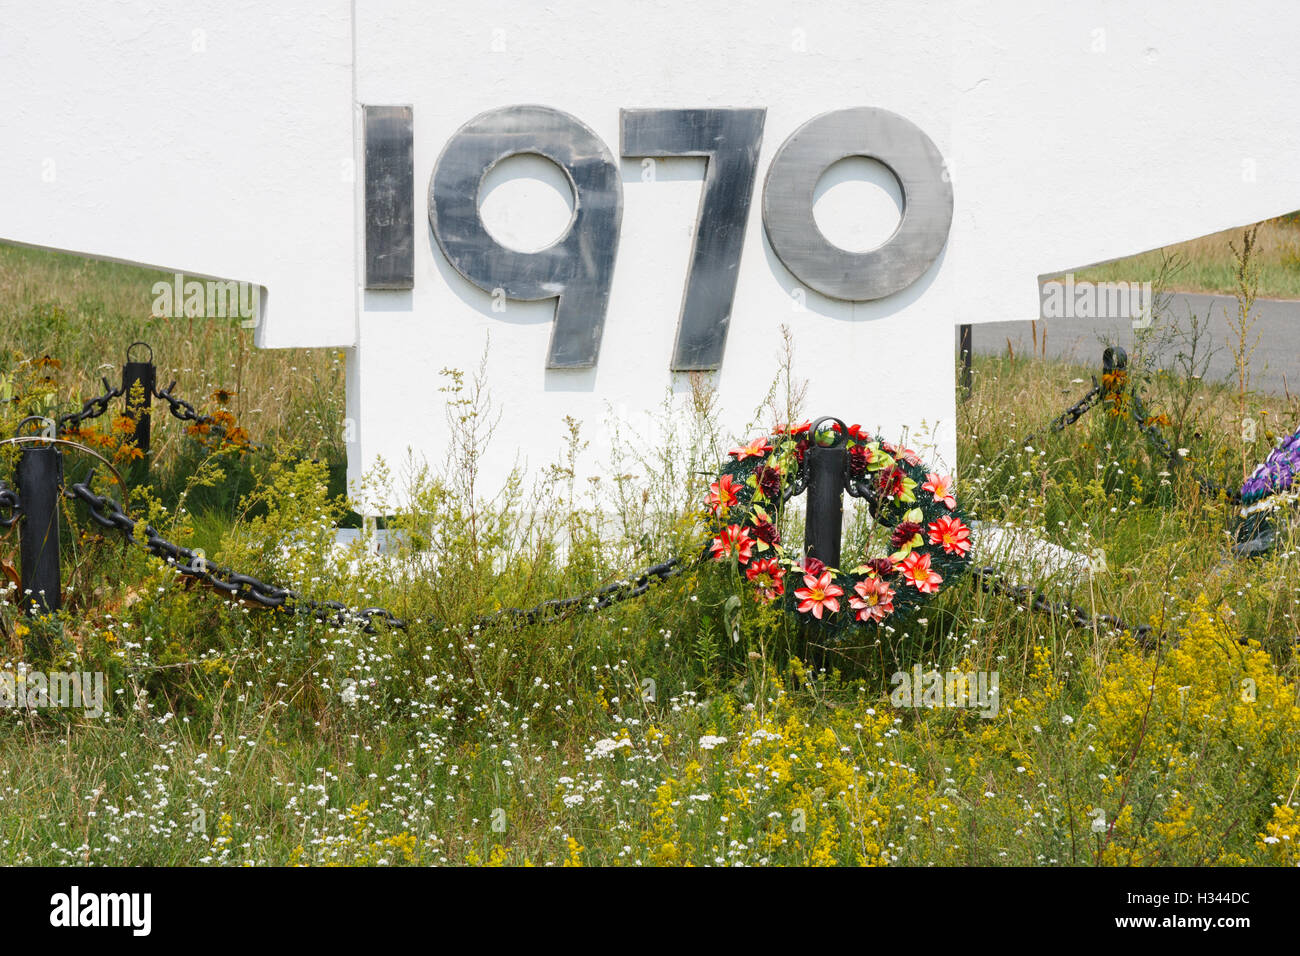 Detail of the Prypiat town sign. The town was founded in 1970 and is abandoned since the 1986 nuclear disaster. - Stock Image